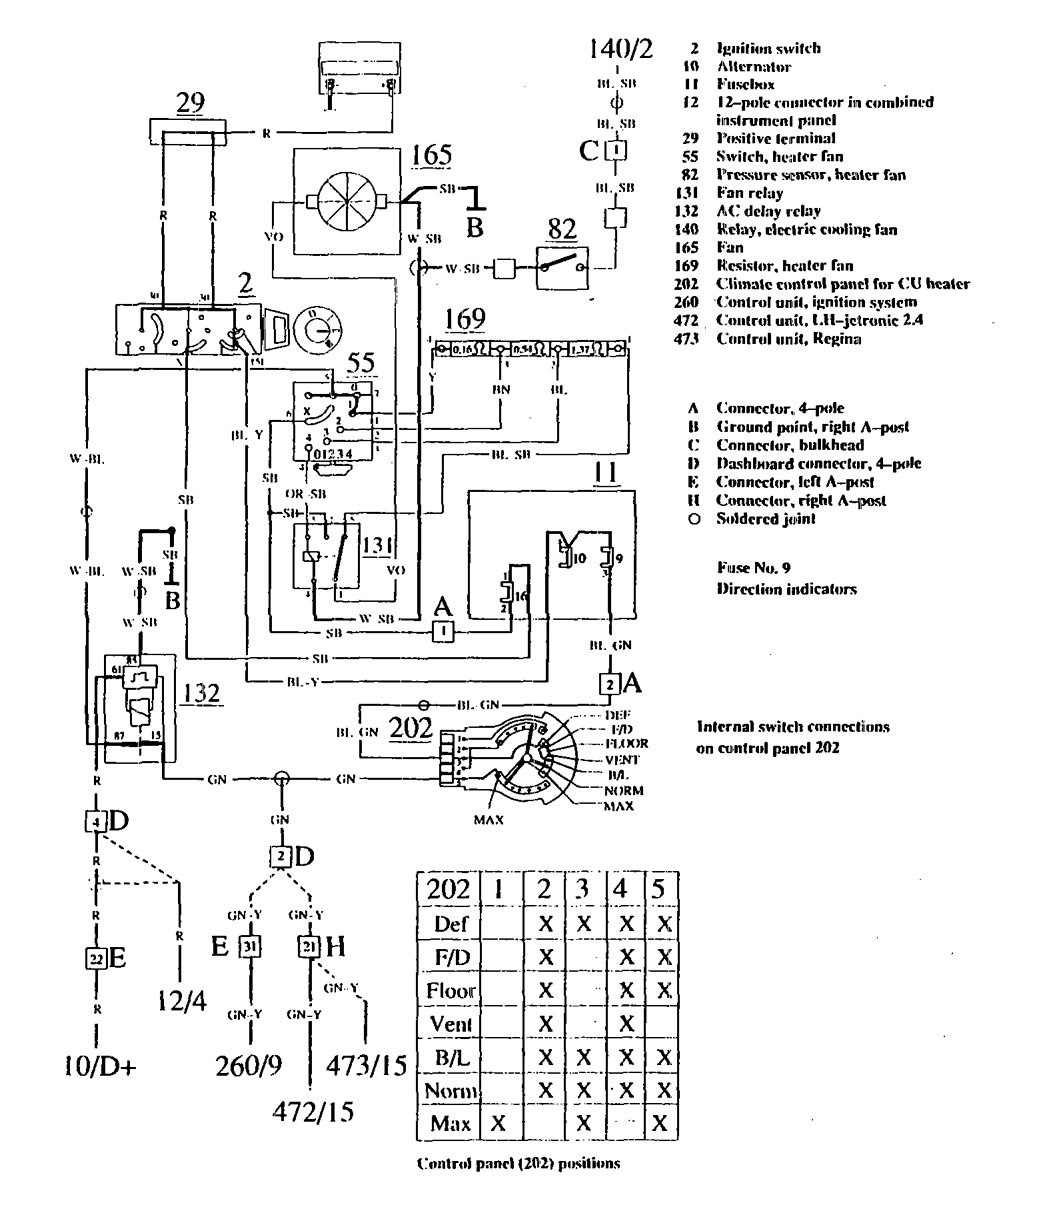 2010 ford explorer wiring diagram 1979 kawasaki kz1000 which fuse controls the lighter